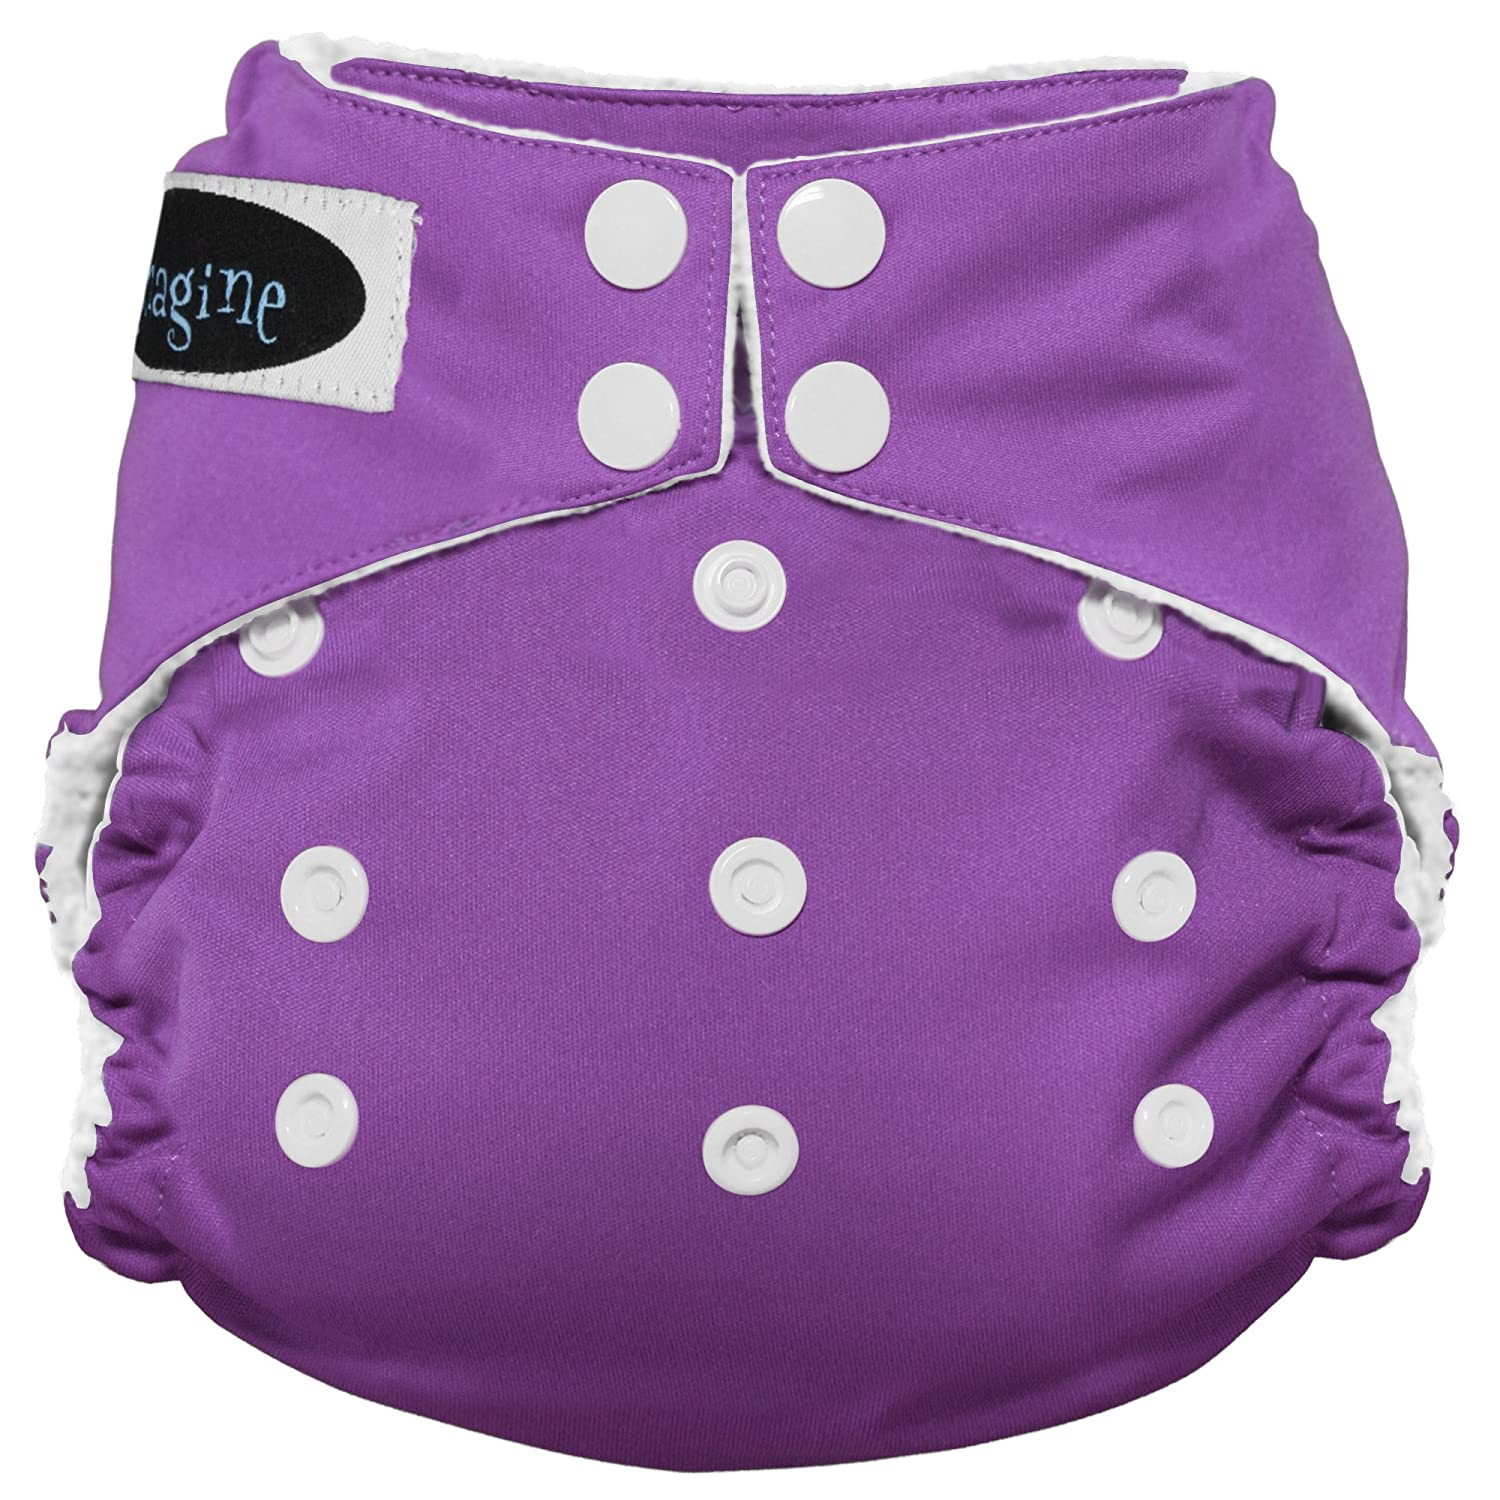 Top 6 Best Cheap AIO Cloth Diapers Reviews in 2021 6